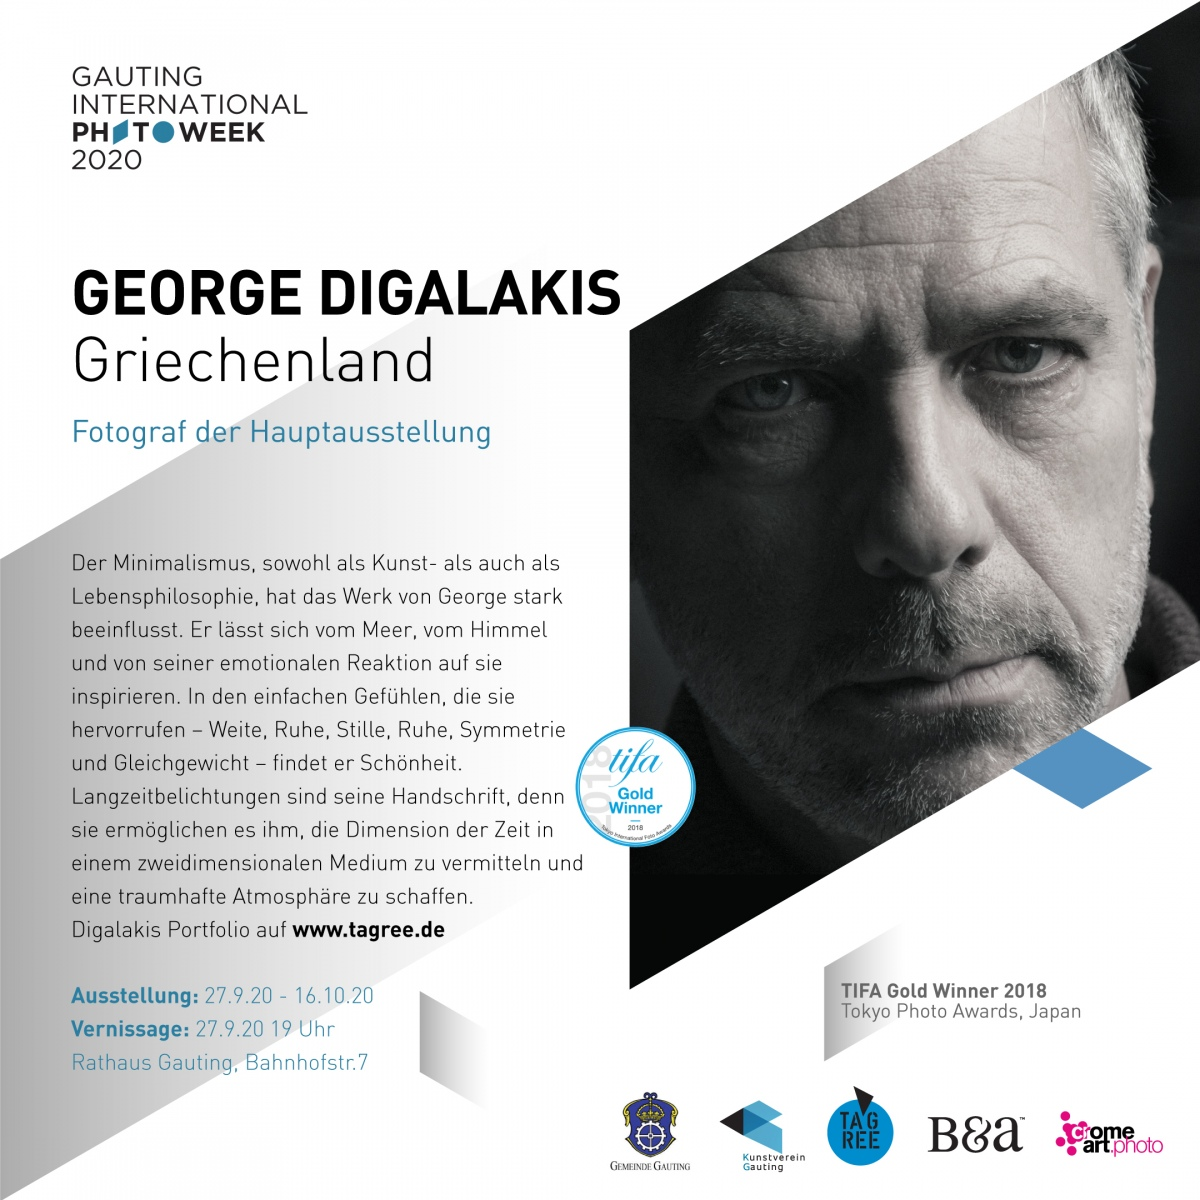 George Digalakis / Griechenland